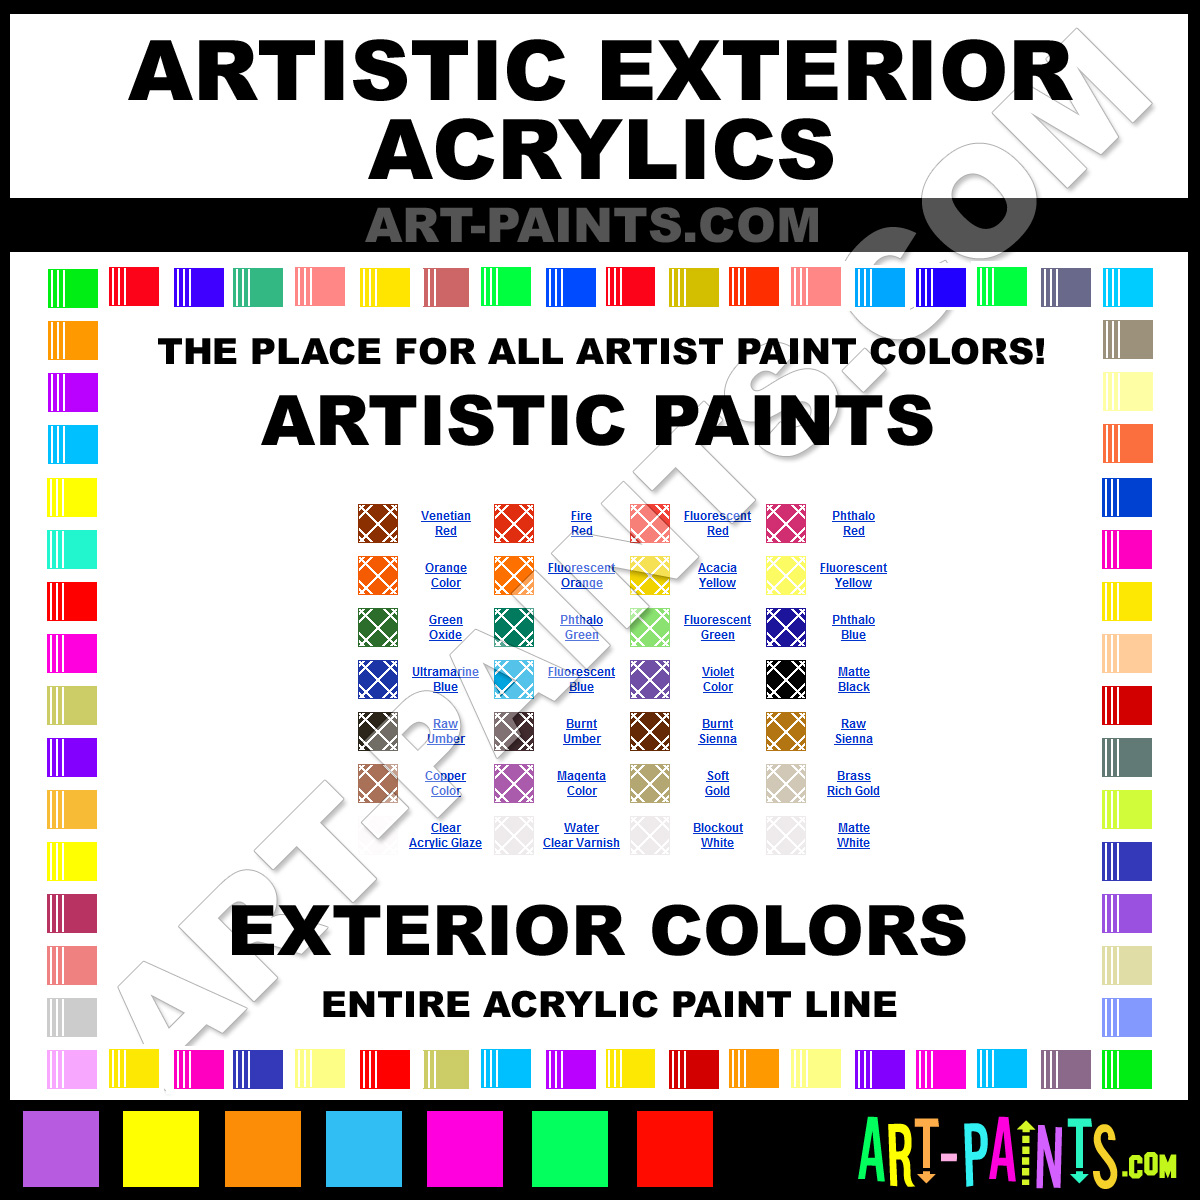 Pin artistic exterior acrylic paint colors on pinterest - Acrylic paint exterior plan ...